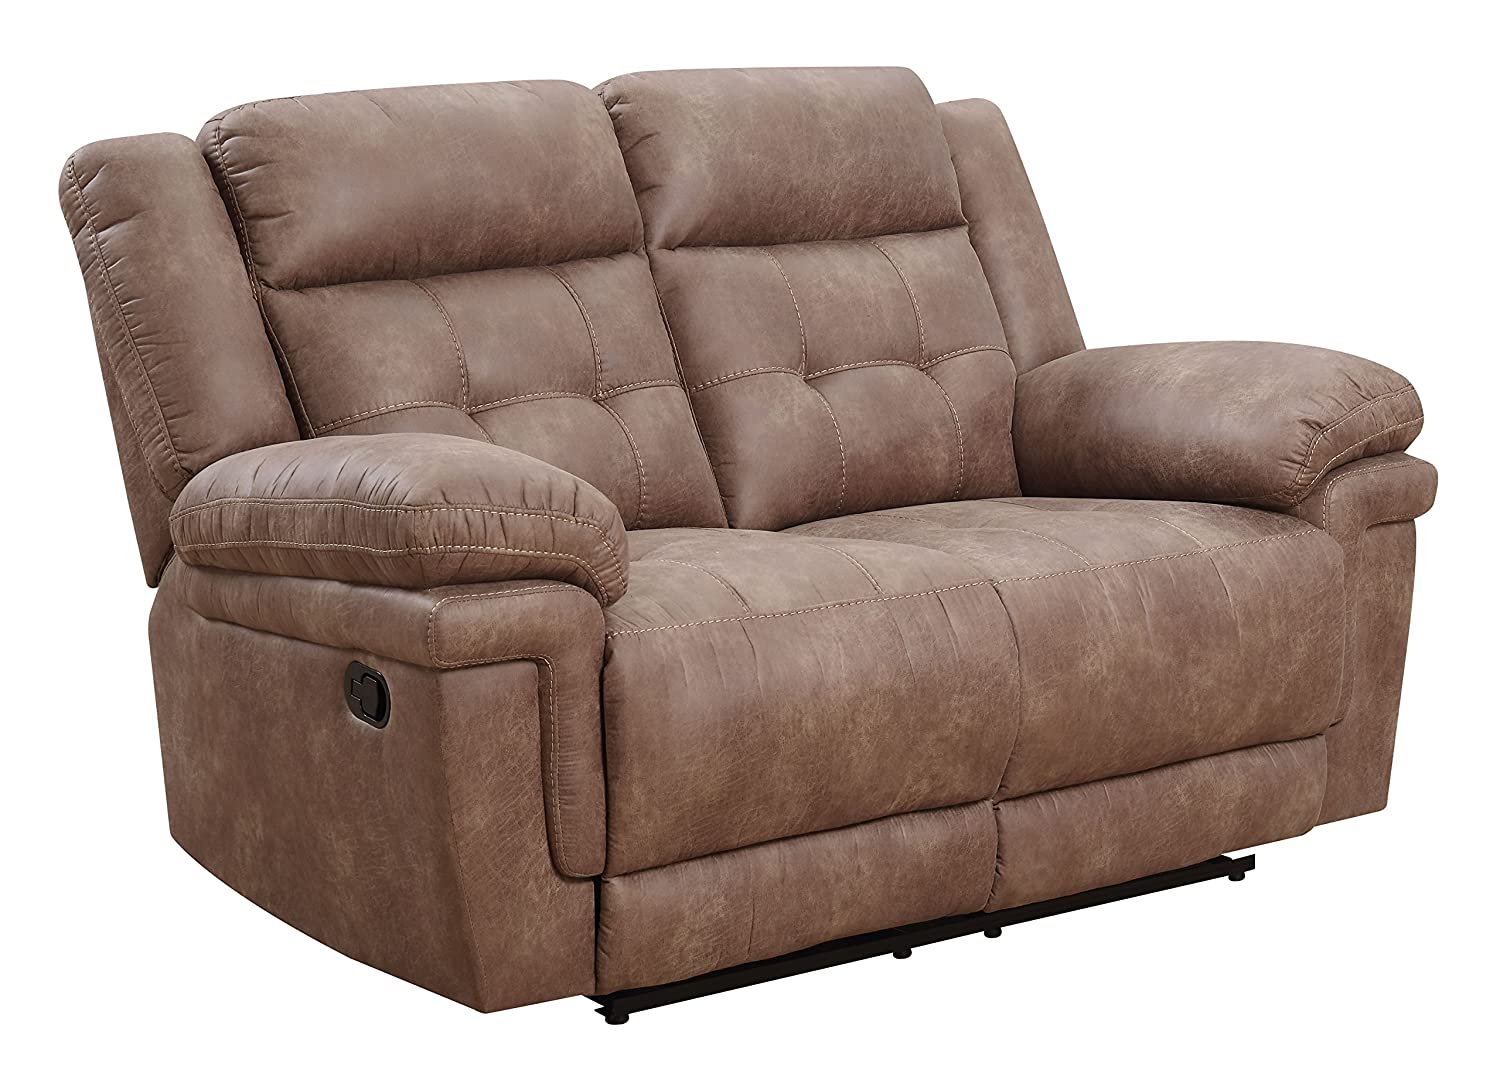 Remarkable Steve Silver Anastasia Fabric Reclining Loveseat In Cocoa Caraccident5 Cool Chair Designs And Ideas Caraccident5Info